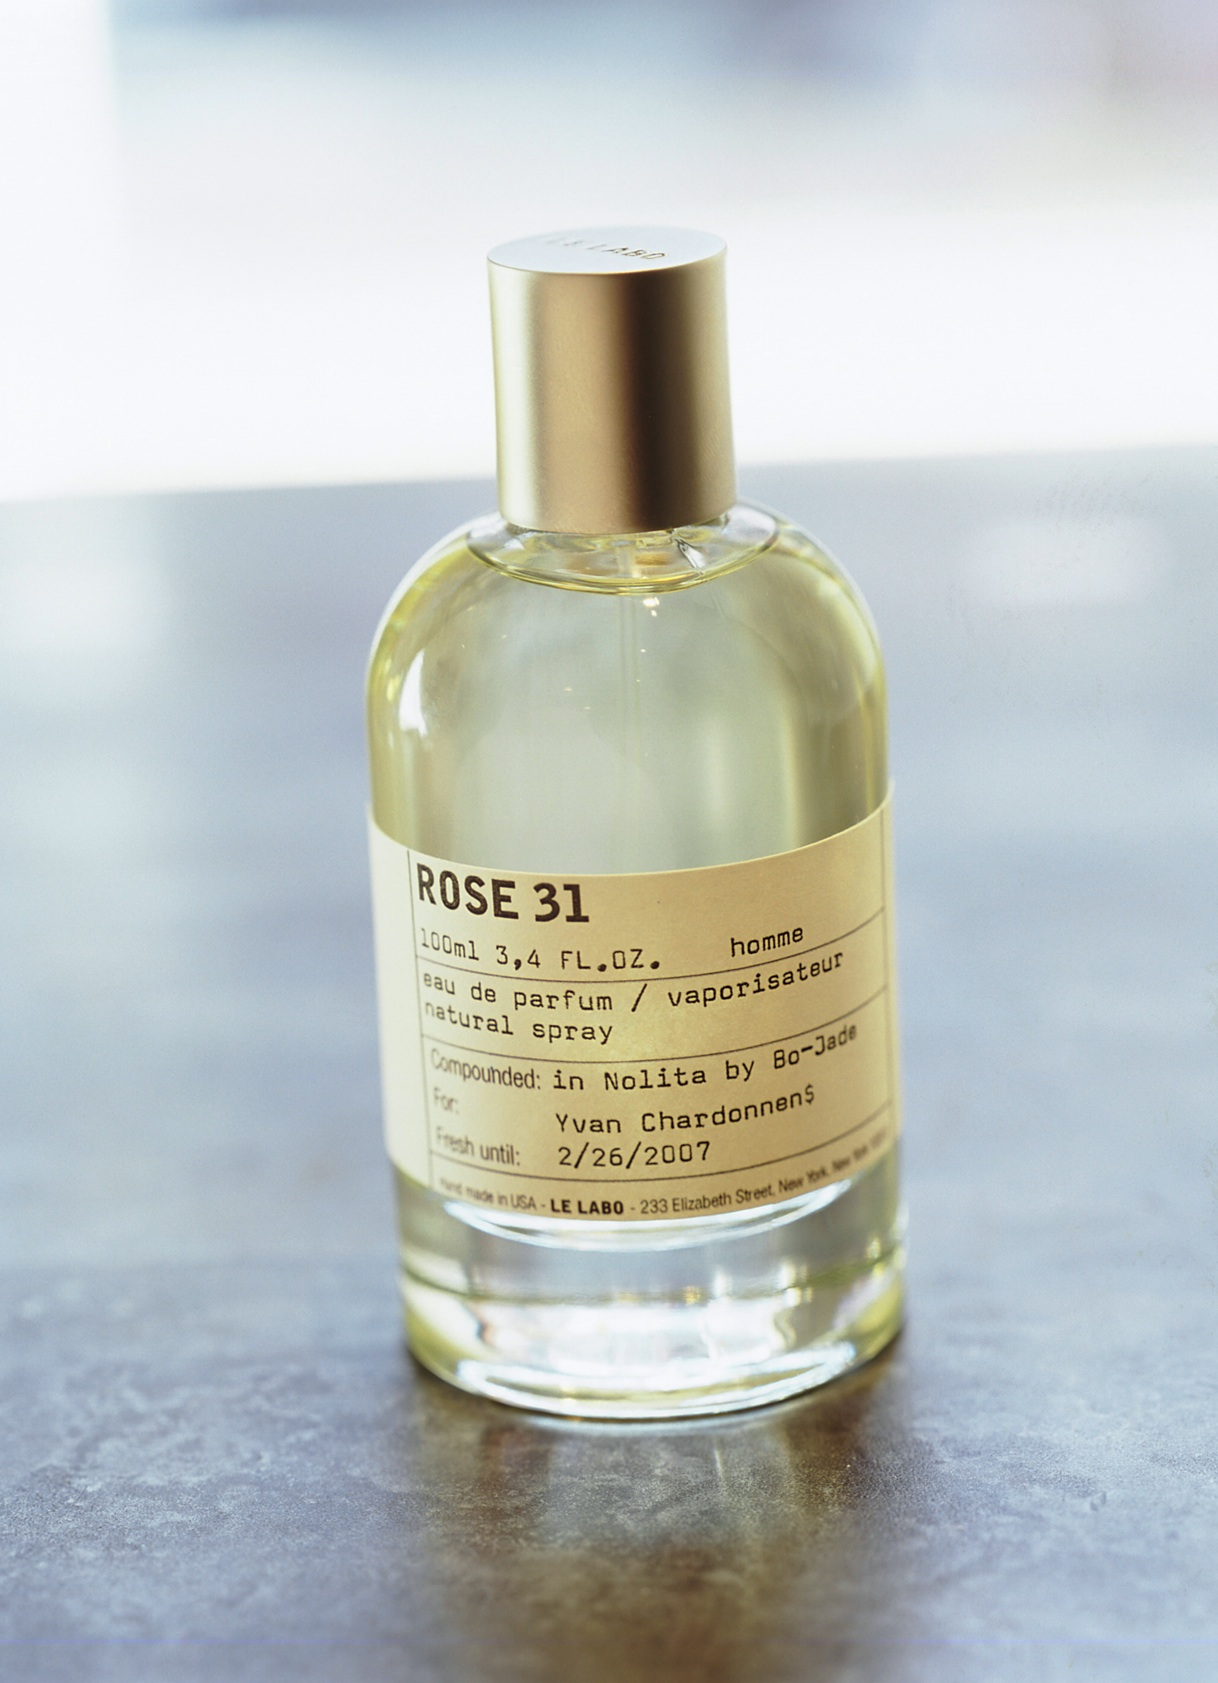 Avoiding The Dry Down Le Labo Rose 31 Perfume Review The Candy